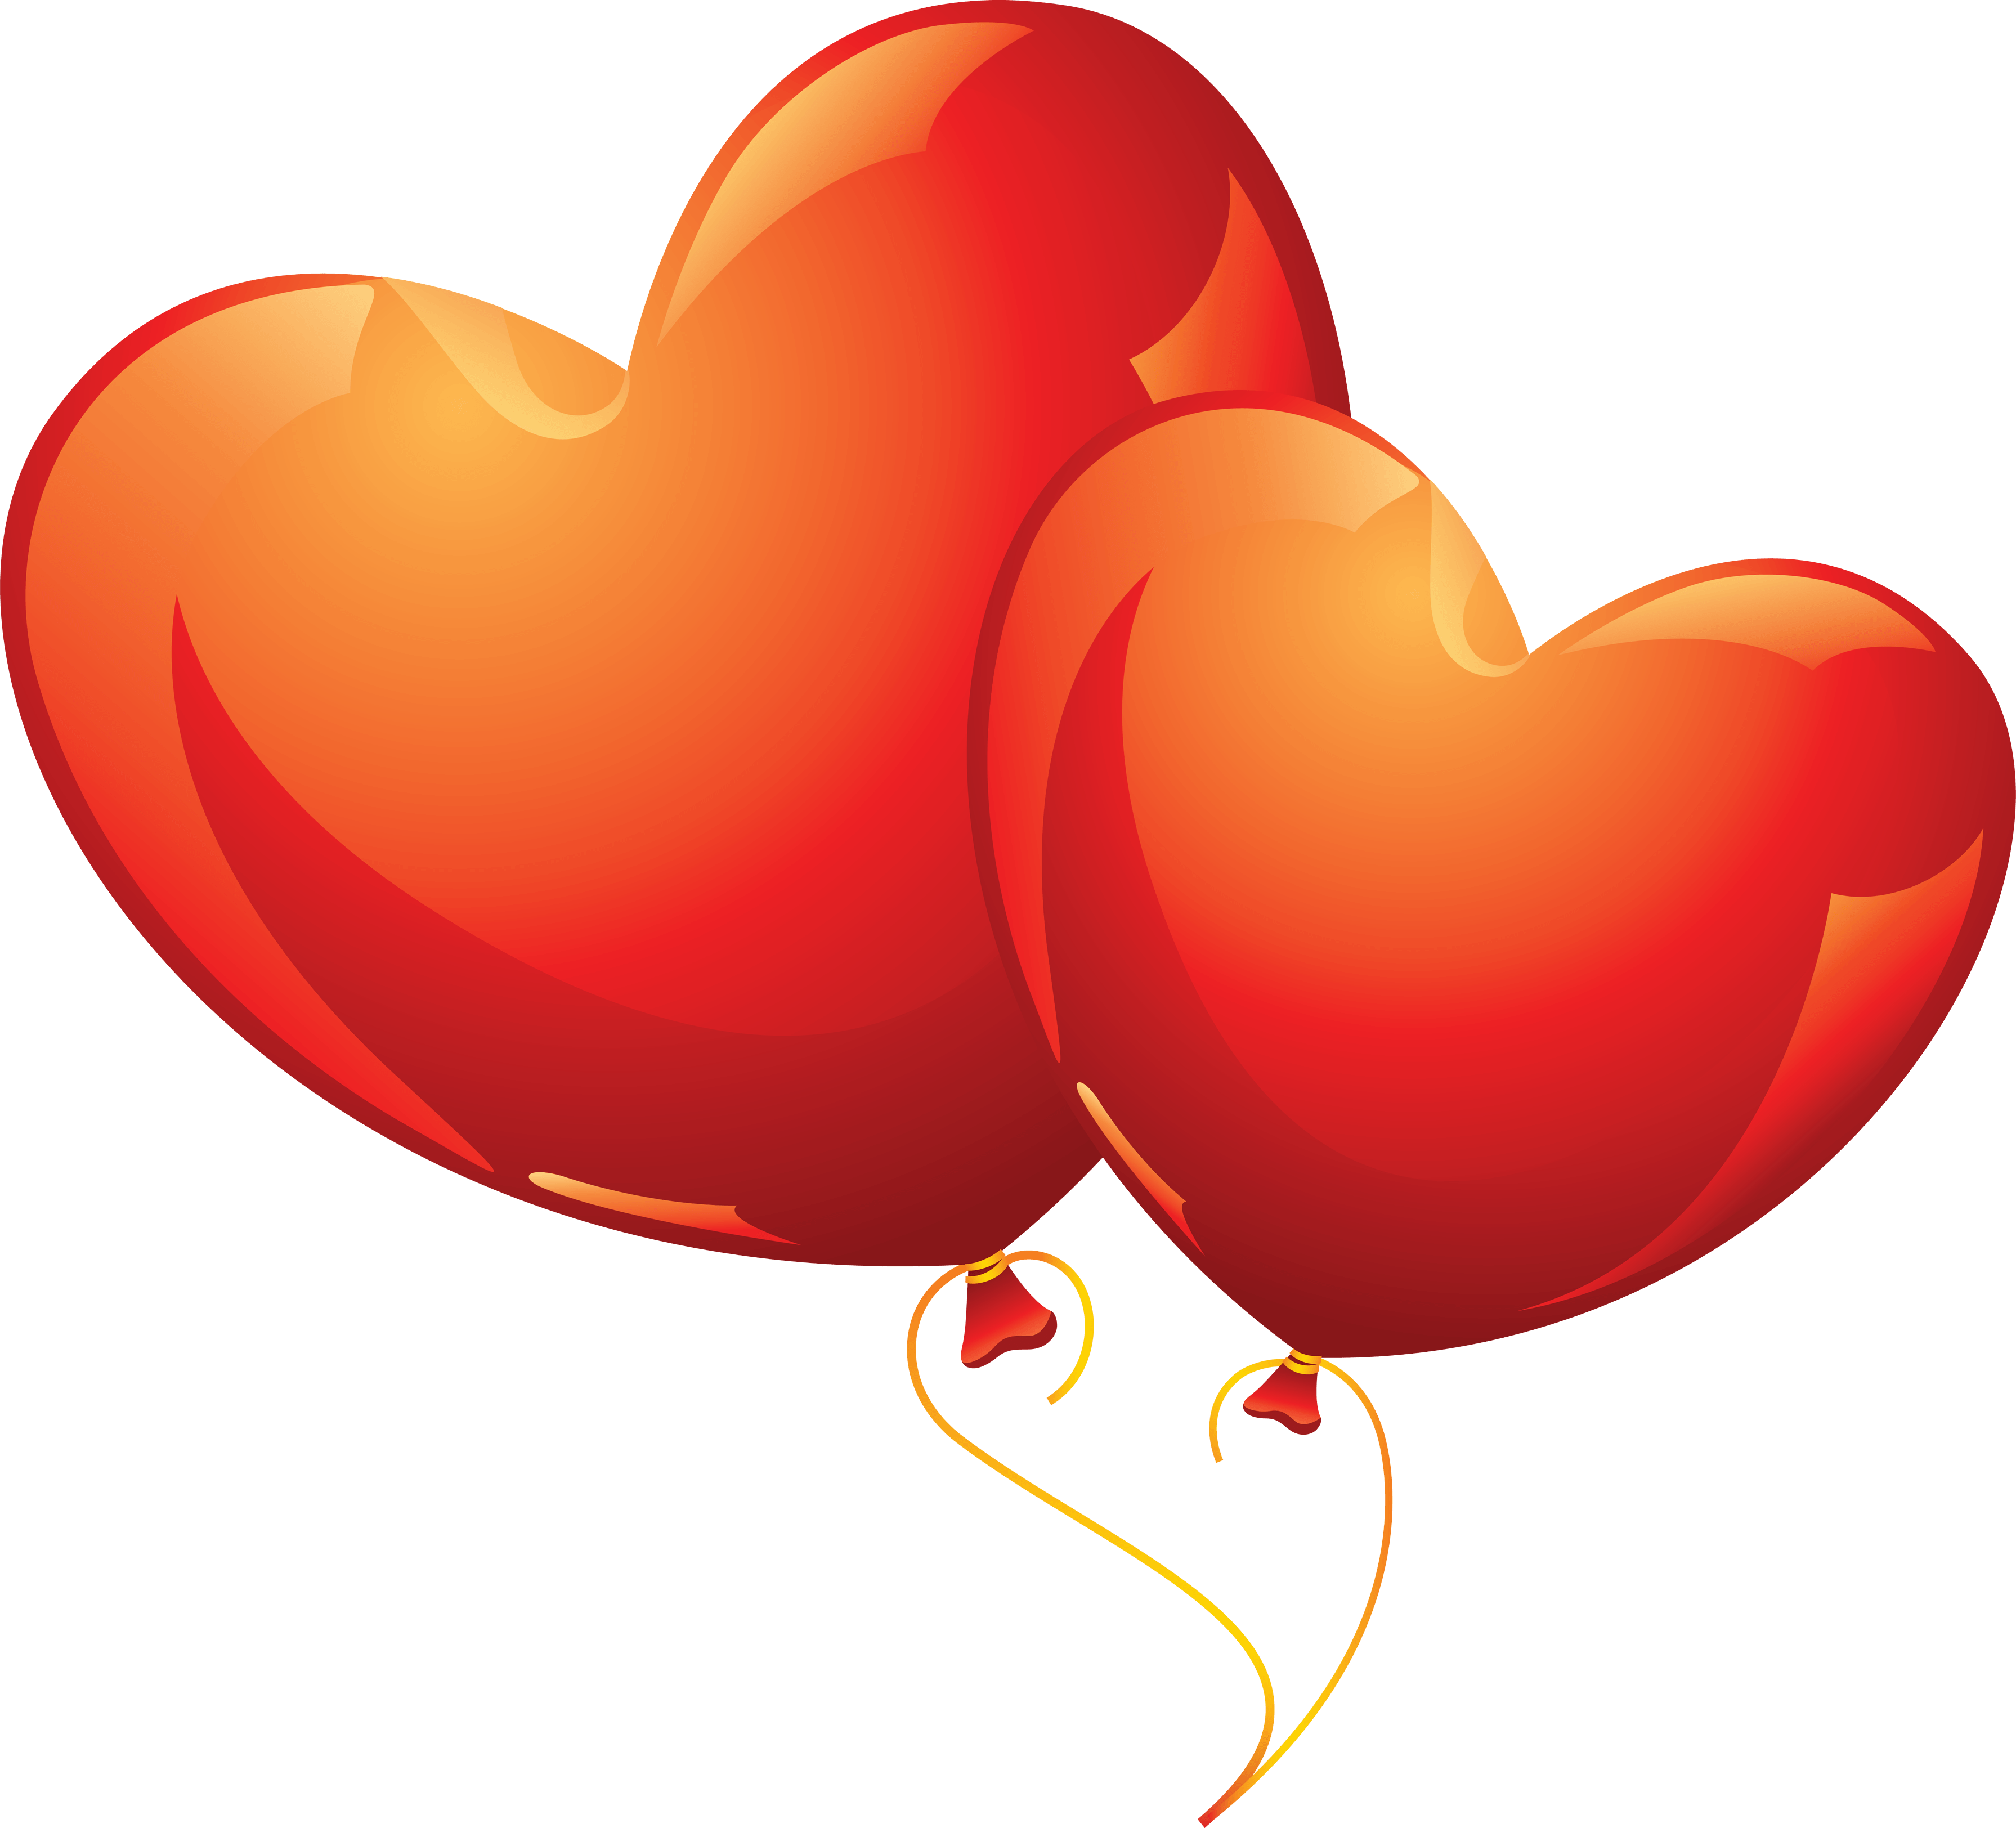 3582x3248 Download Heart Balloon Png Image Download Heart Balloons Hq Png